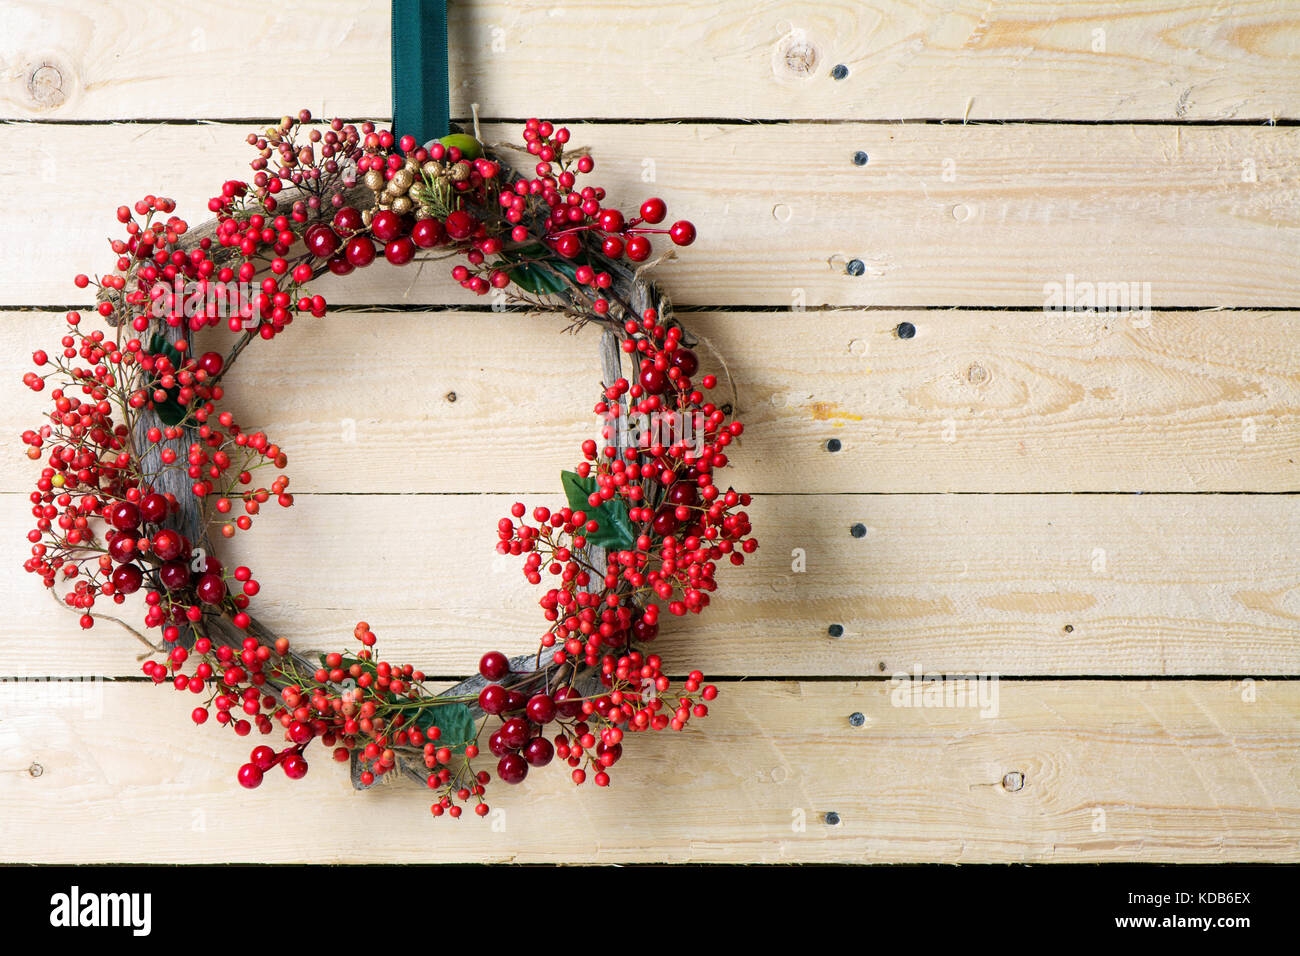 Christmas Wreath Of Evergreen And Berries On Wooden Background Natural Nandian Network Rustic Wood Crown